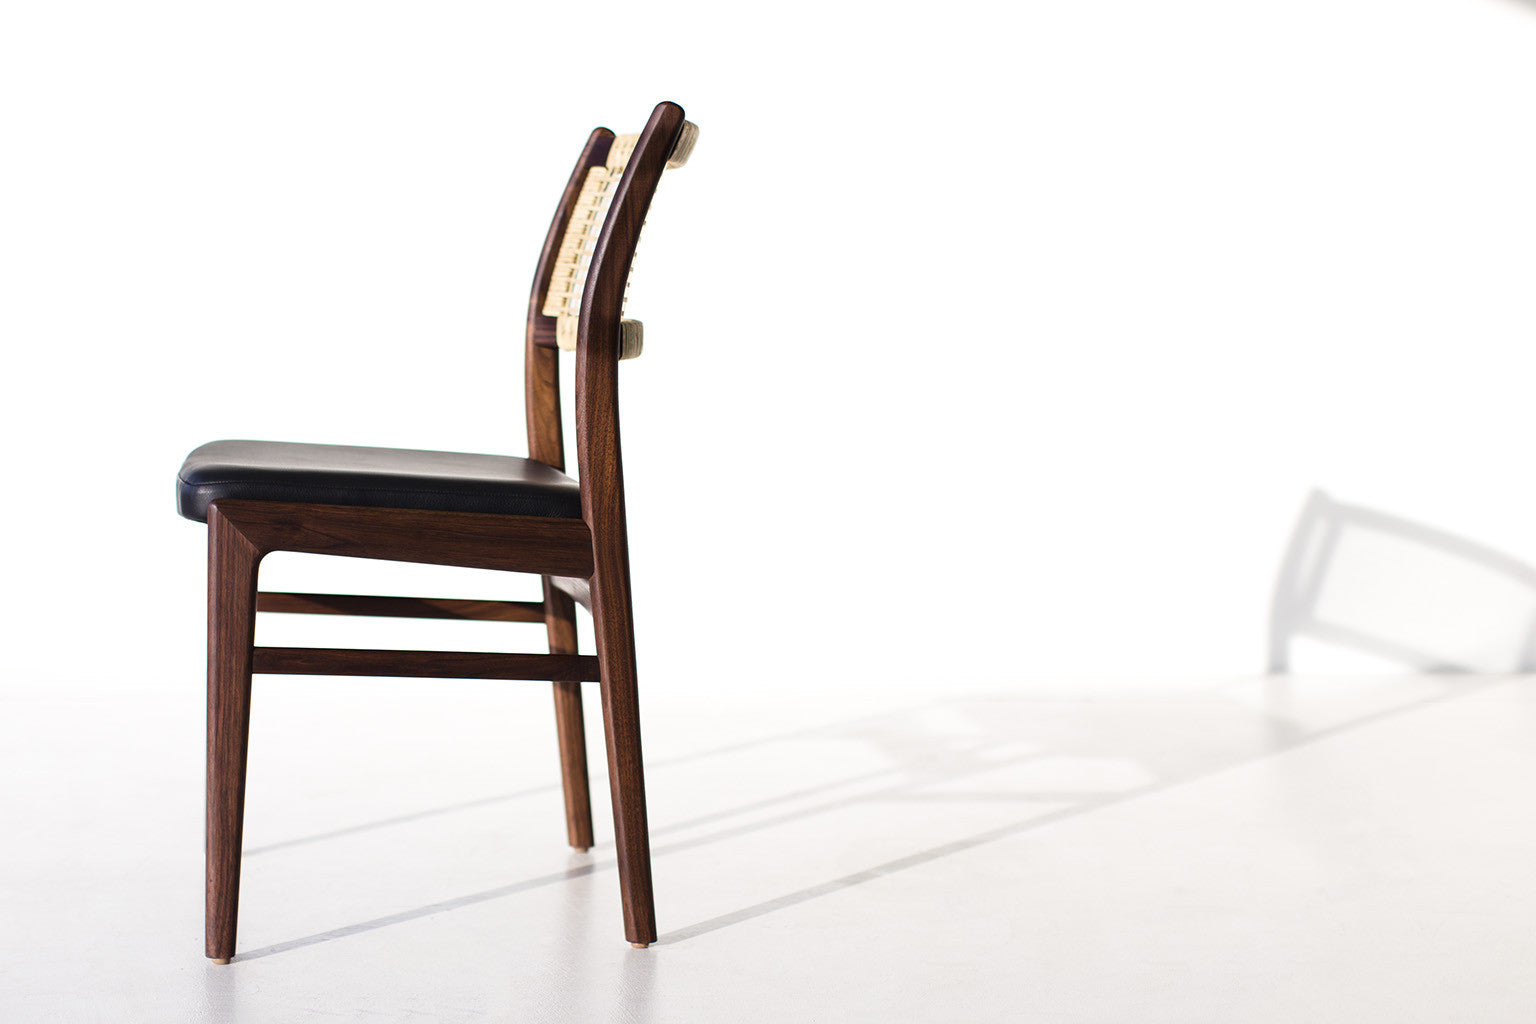 sylve-stenquist-dining-chairs-tribute-furniture-T-1002-03